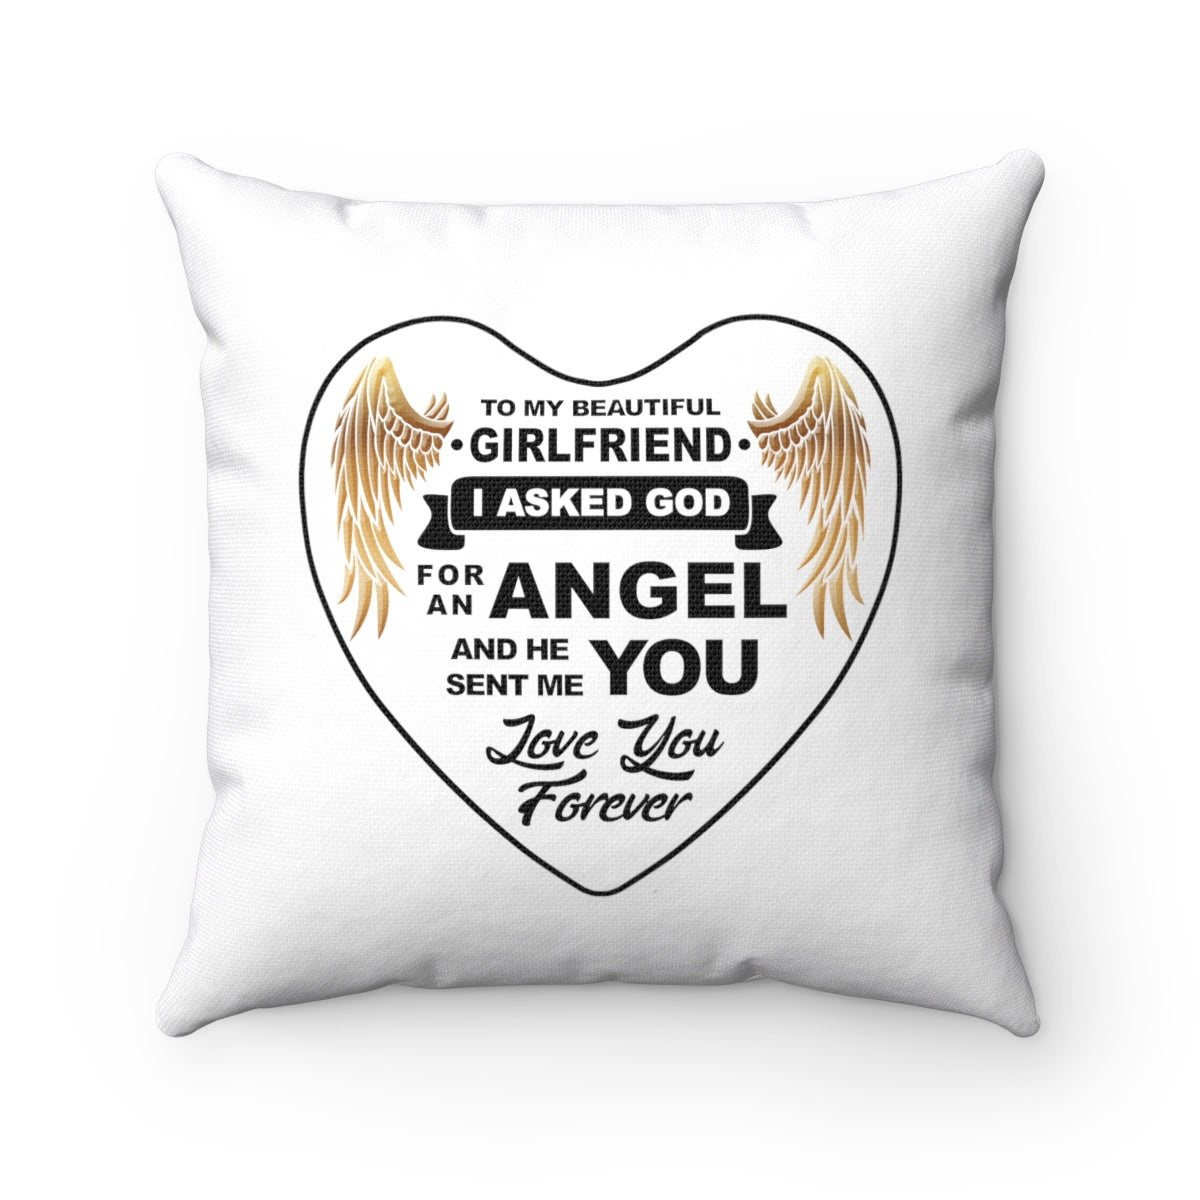 To My Girlfriend Pillow